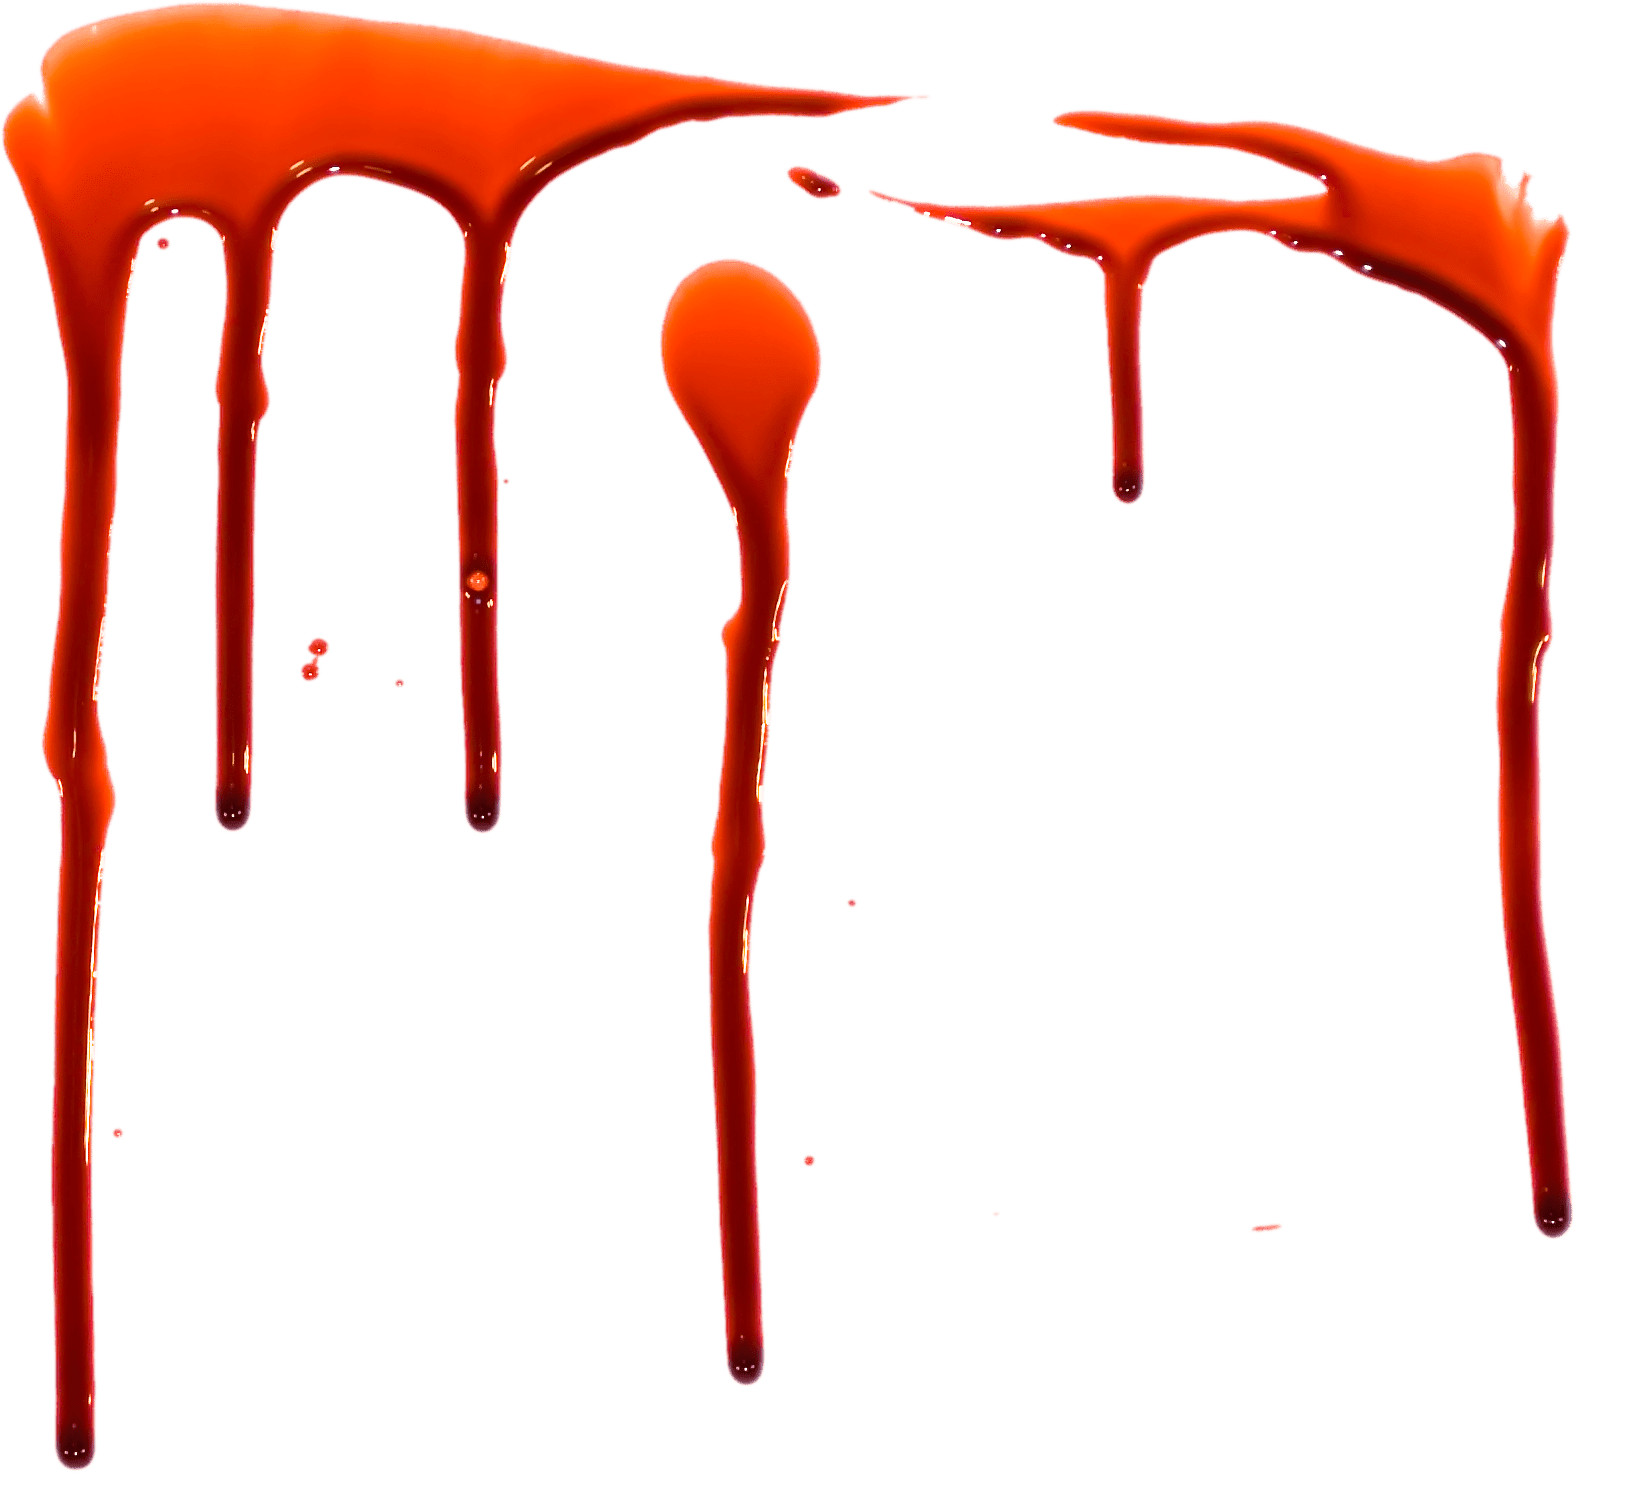 hight resolution of pluspng com blood png image pluspng com dripping blood png